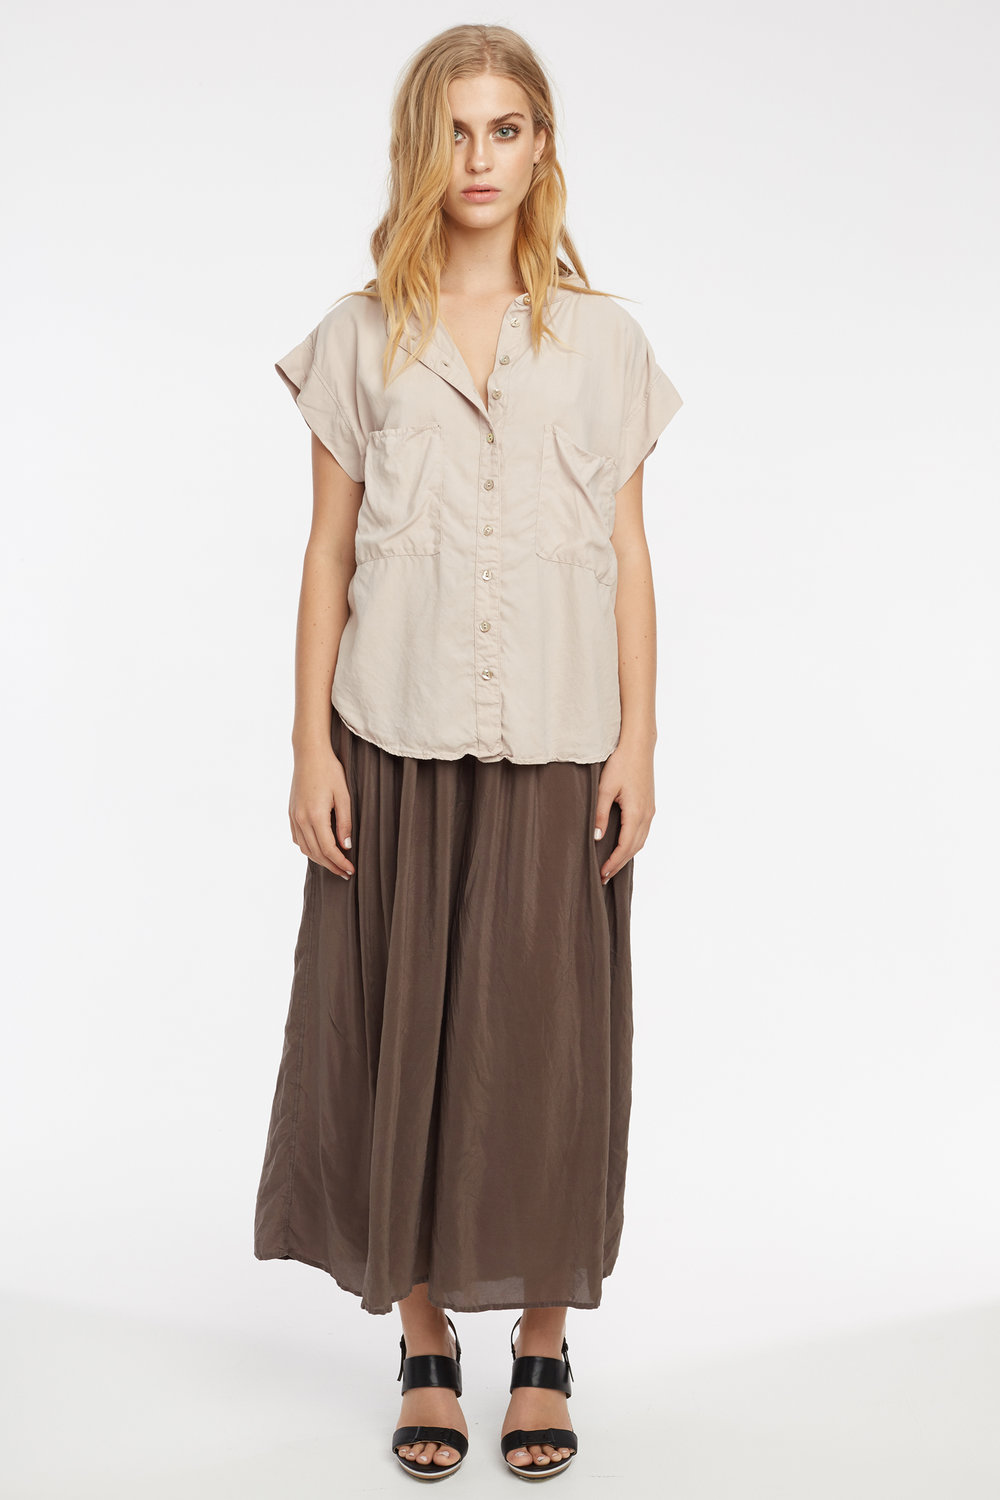 DAMI SHIRT TAUPE. GRUNDY CULOTTE WOODEN